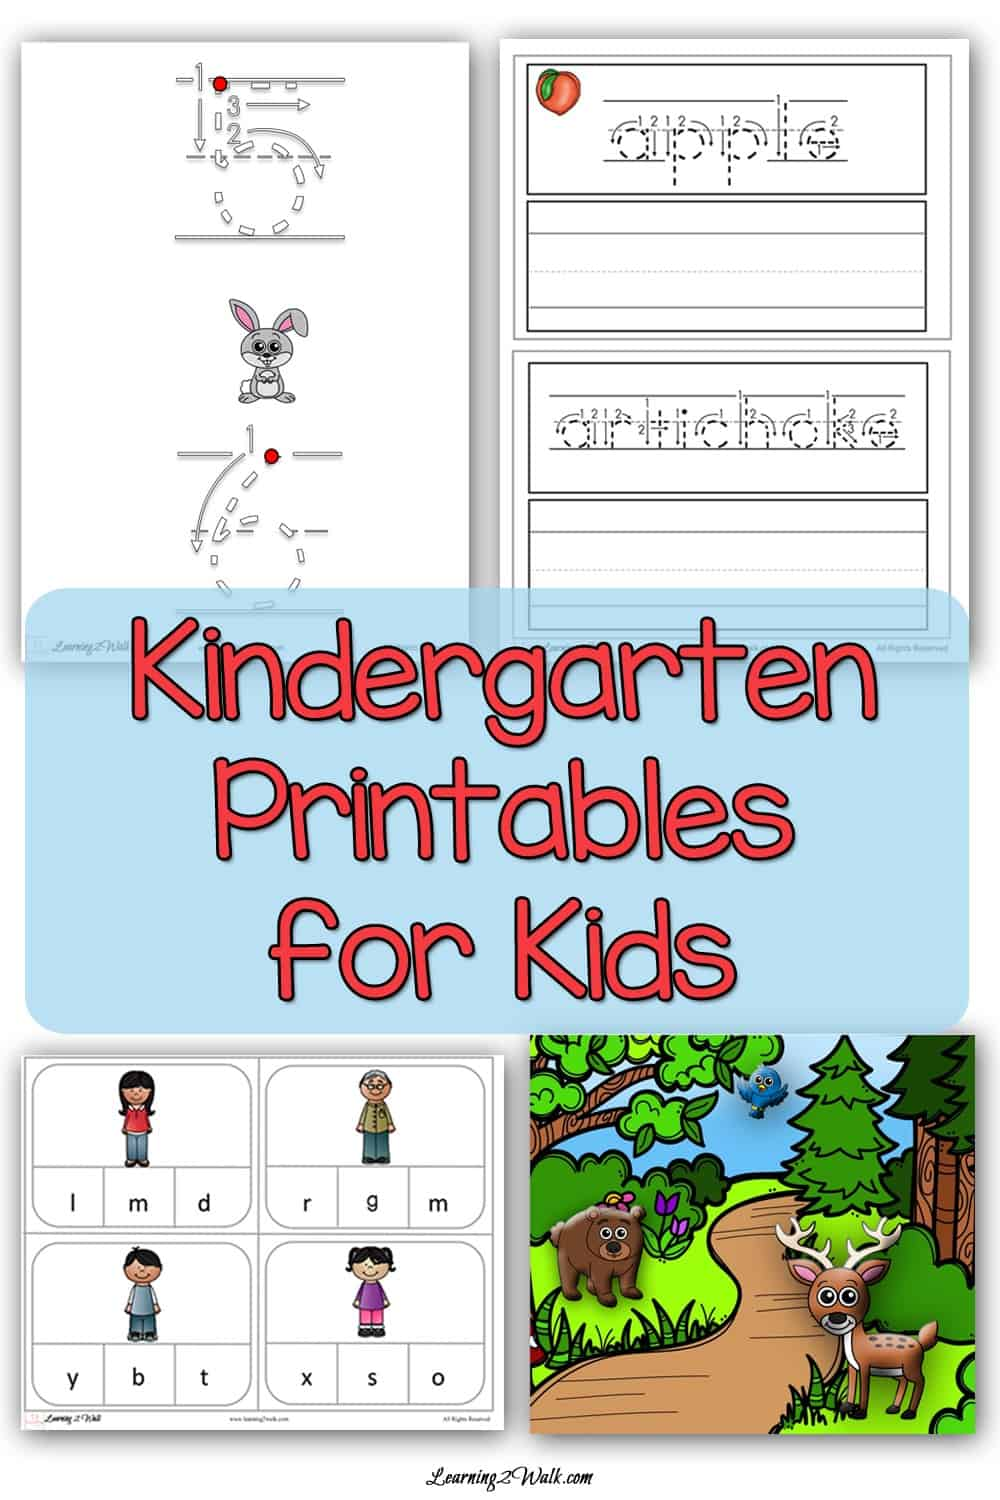 Are you looking for kindergarten worksheets or a few kindergarten printables for kids? Here is our collection of all our kindergarten worksheets to date.